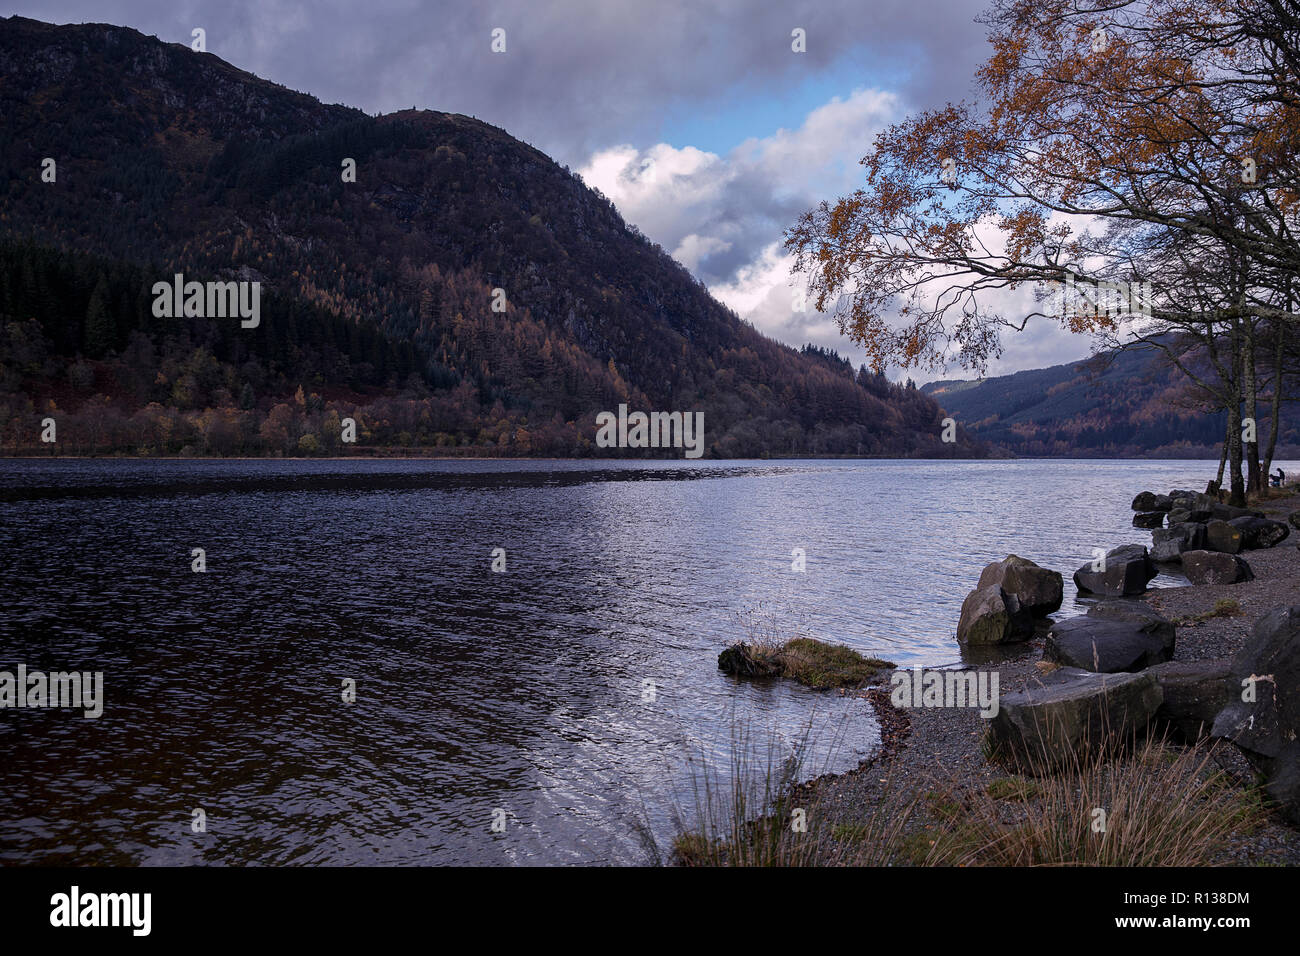 Loch Viel in the still of a winter's day - Stock Image